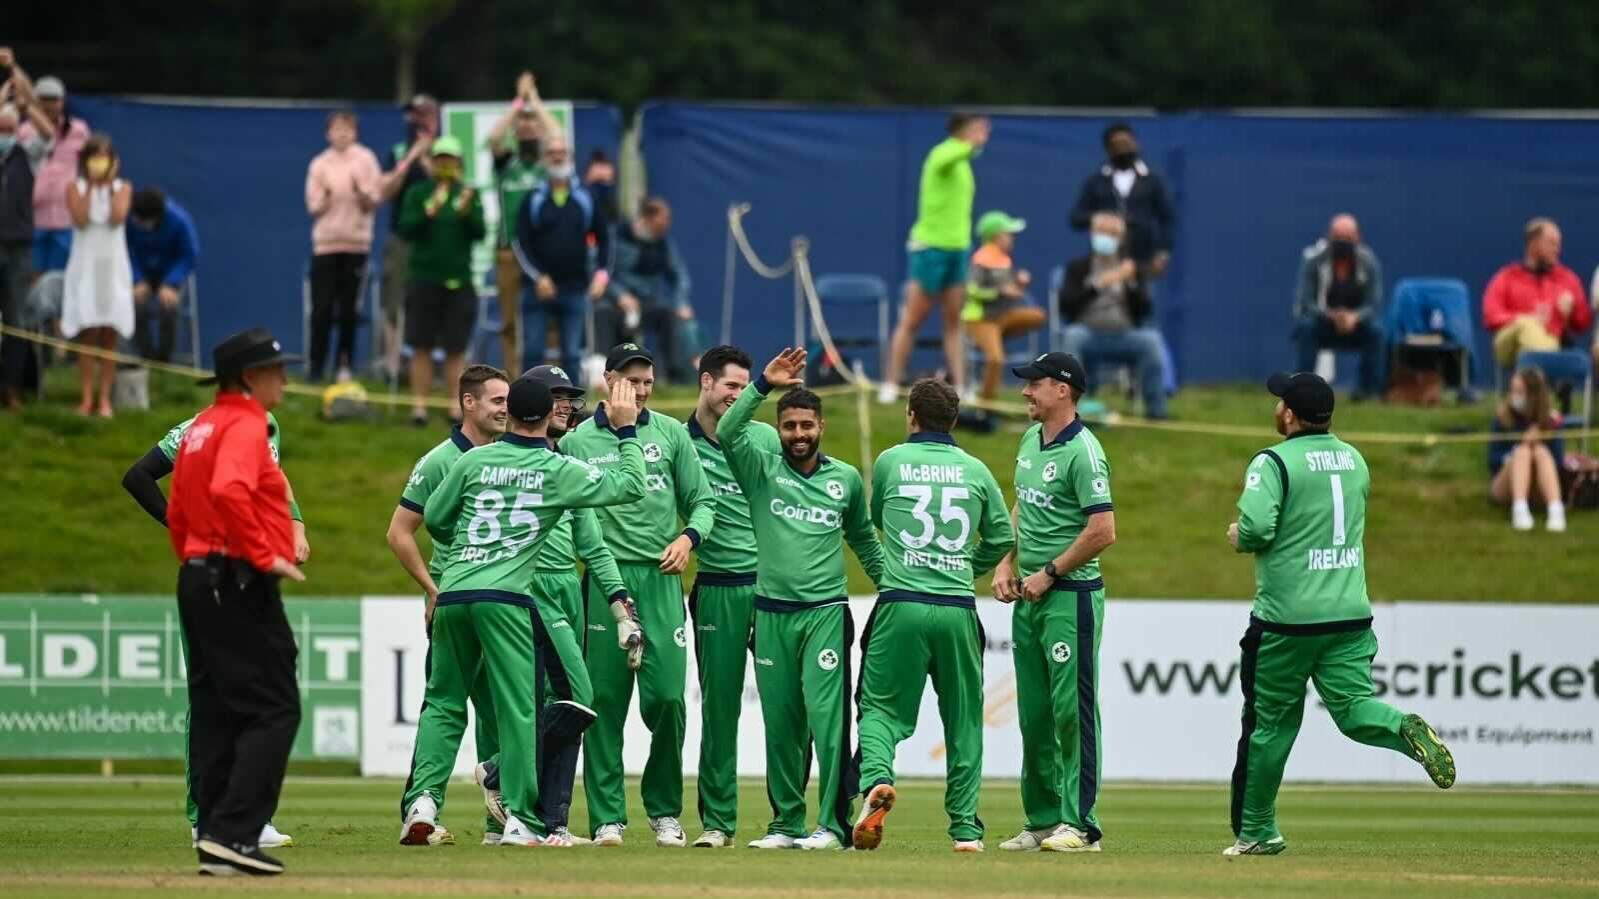 Ireland's players celebrate at the end of their ODI game against South Africa, which they won by 43 runs